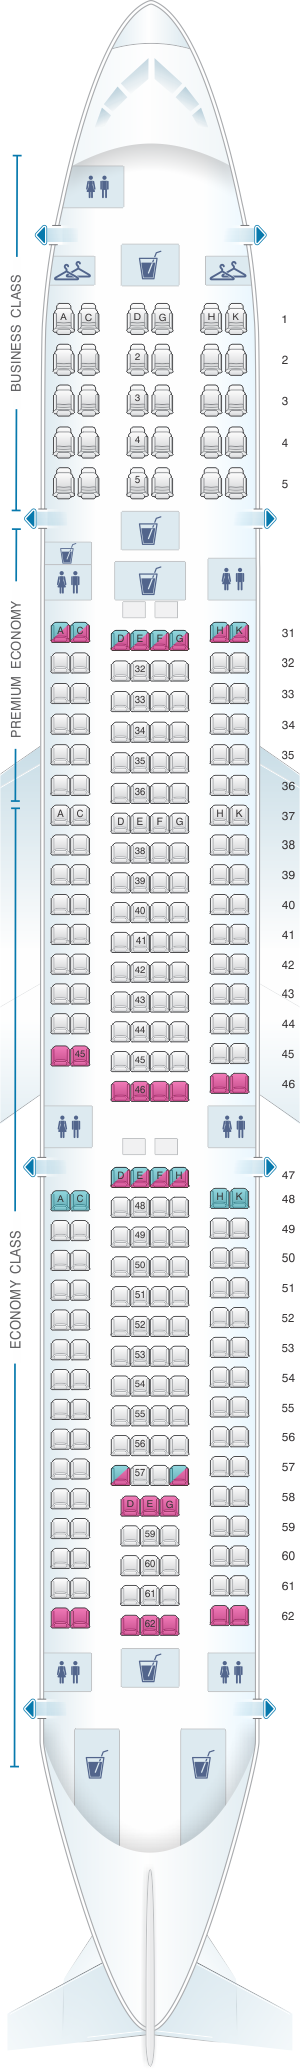 Seat map for China Southern Airlines Airbus A33A